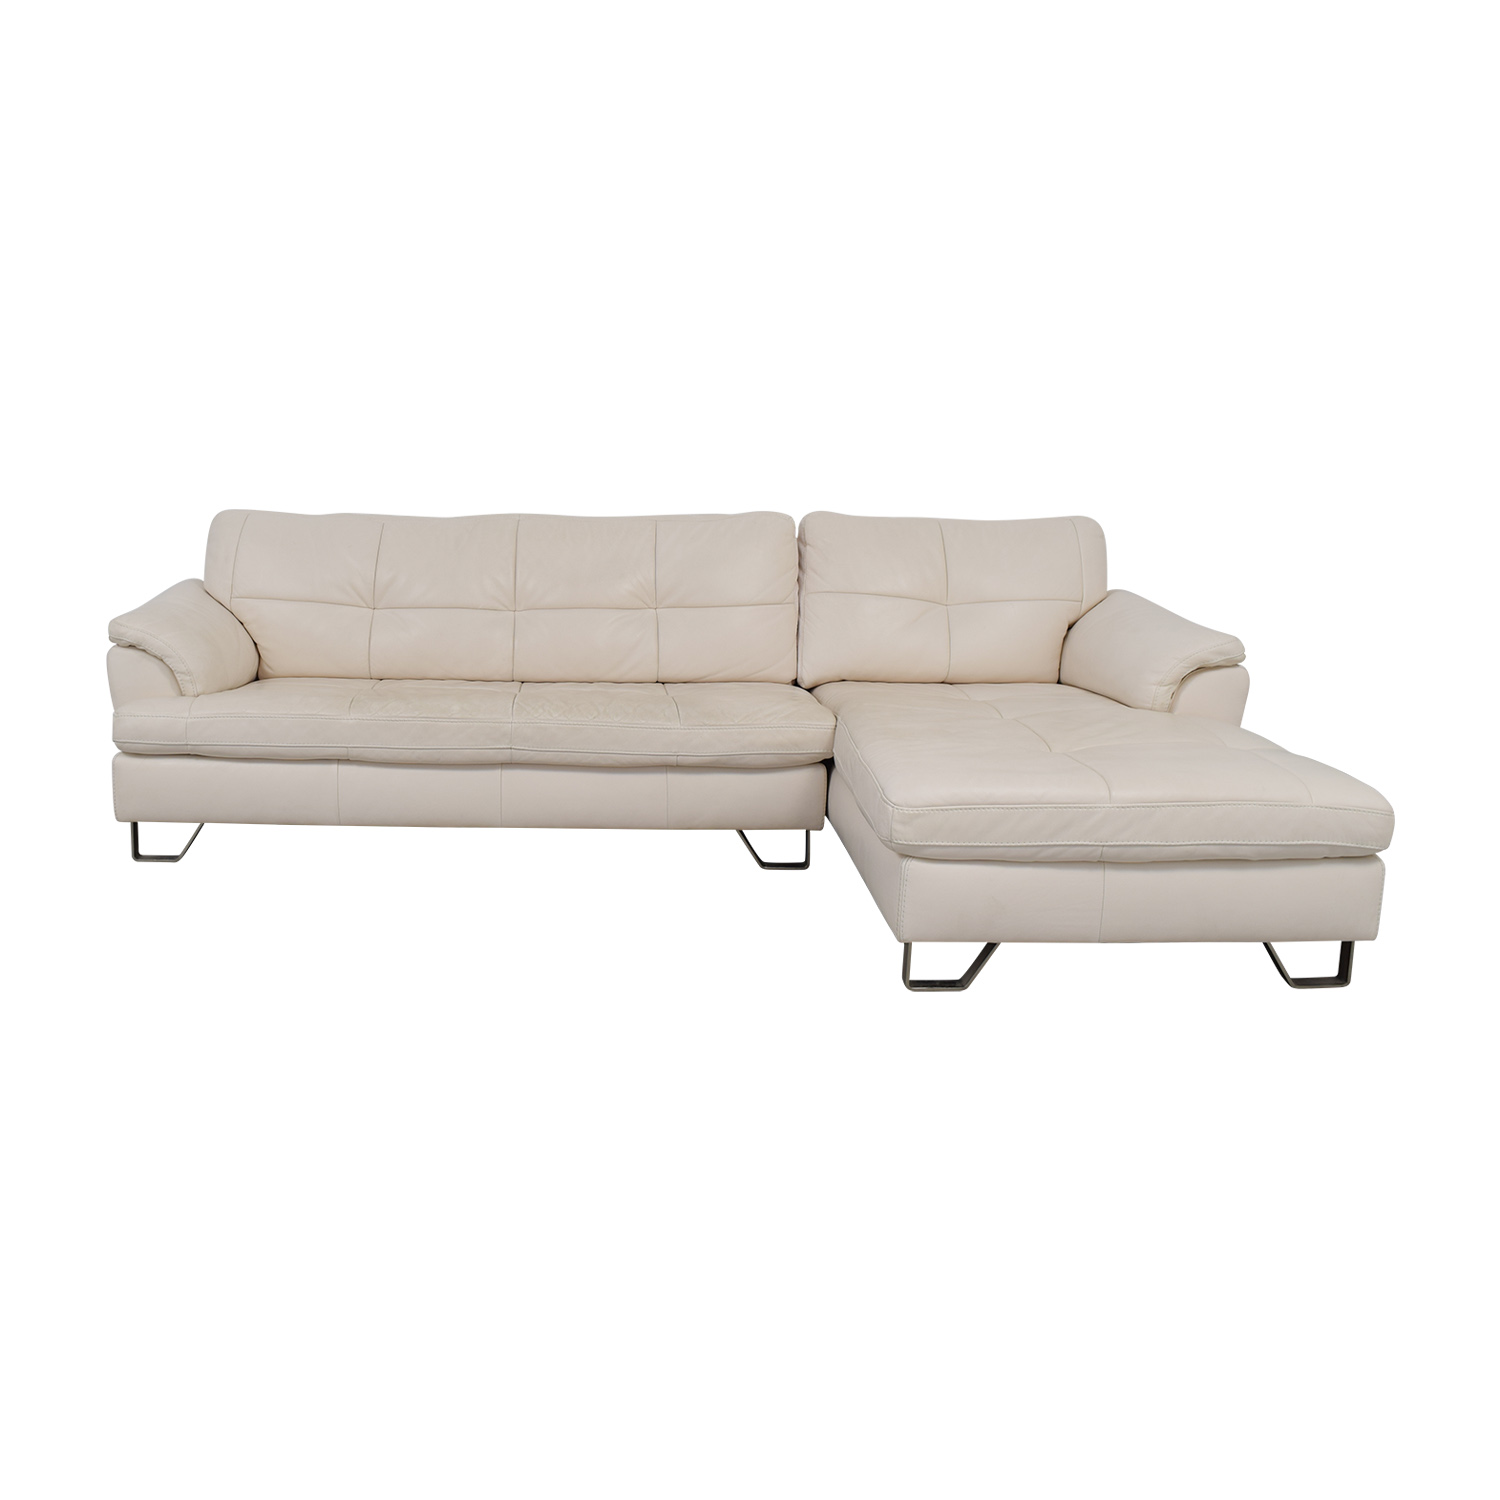 Ashley Furniture White Leather Chaise Sectional / Sectionals